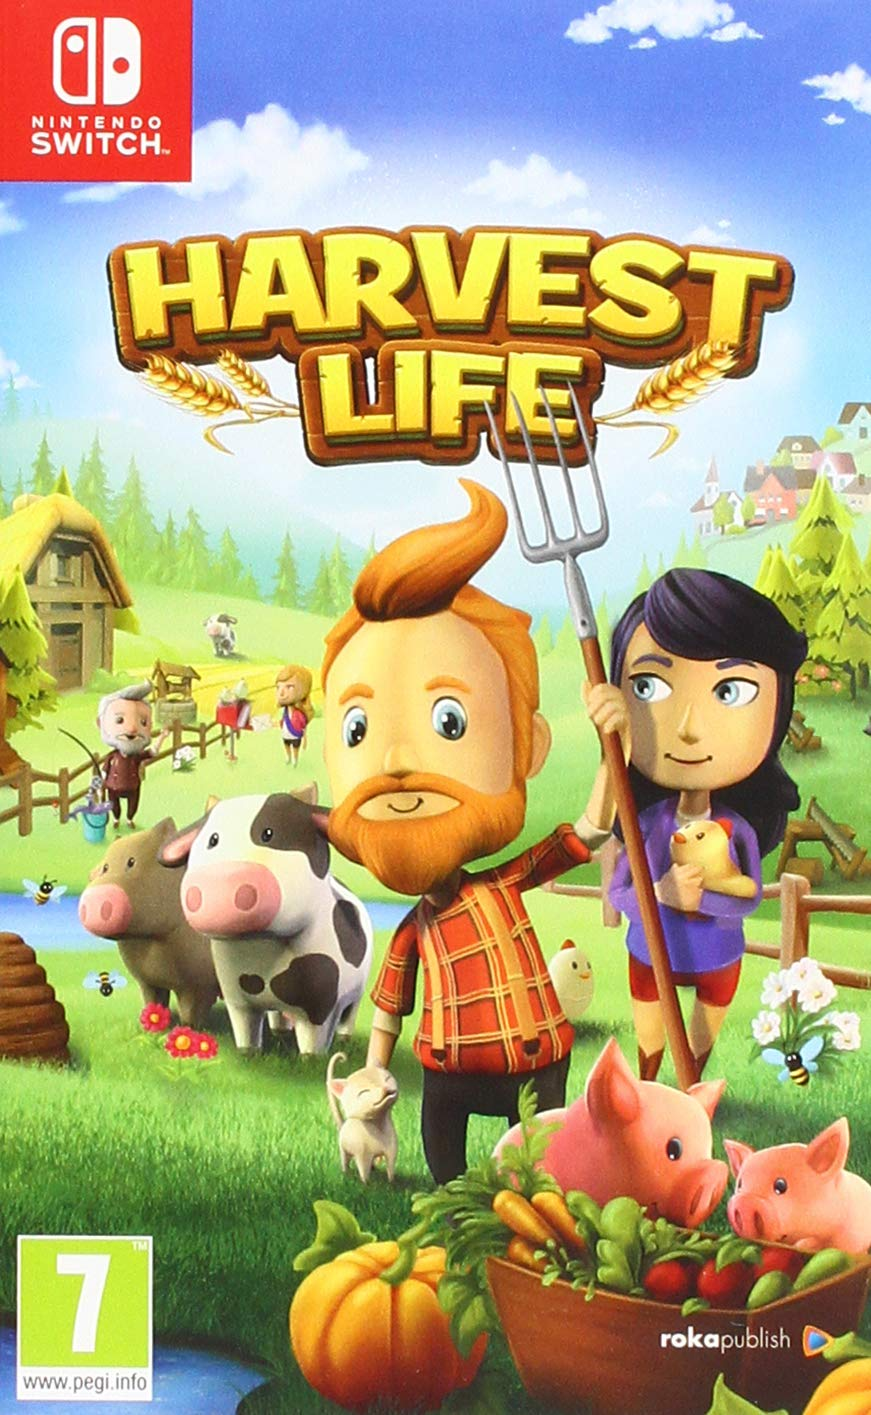 Amazon.com: Harvest Life (Nintendo Switch): Video Games